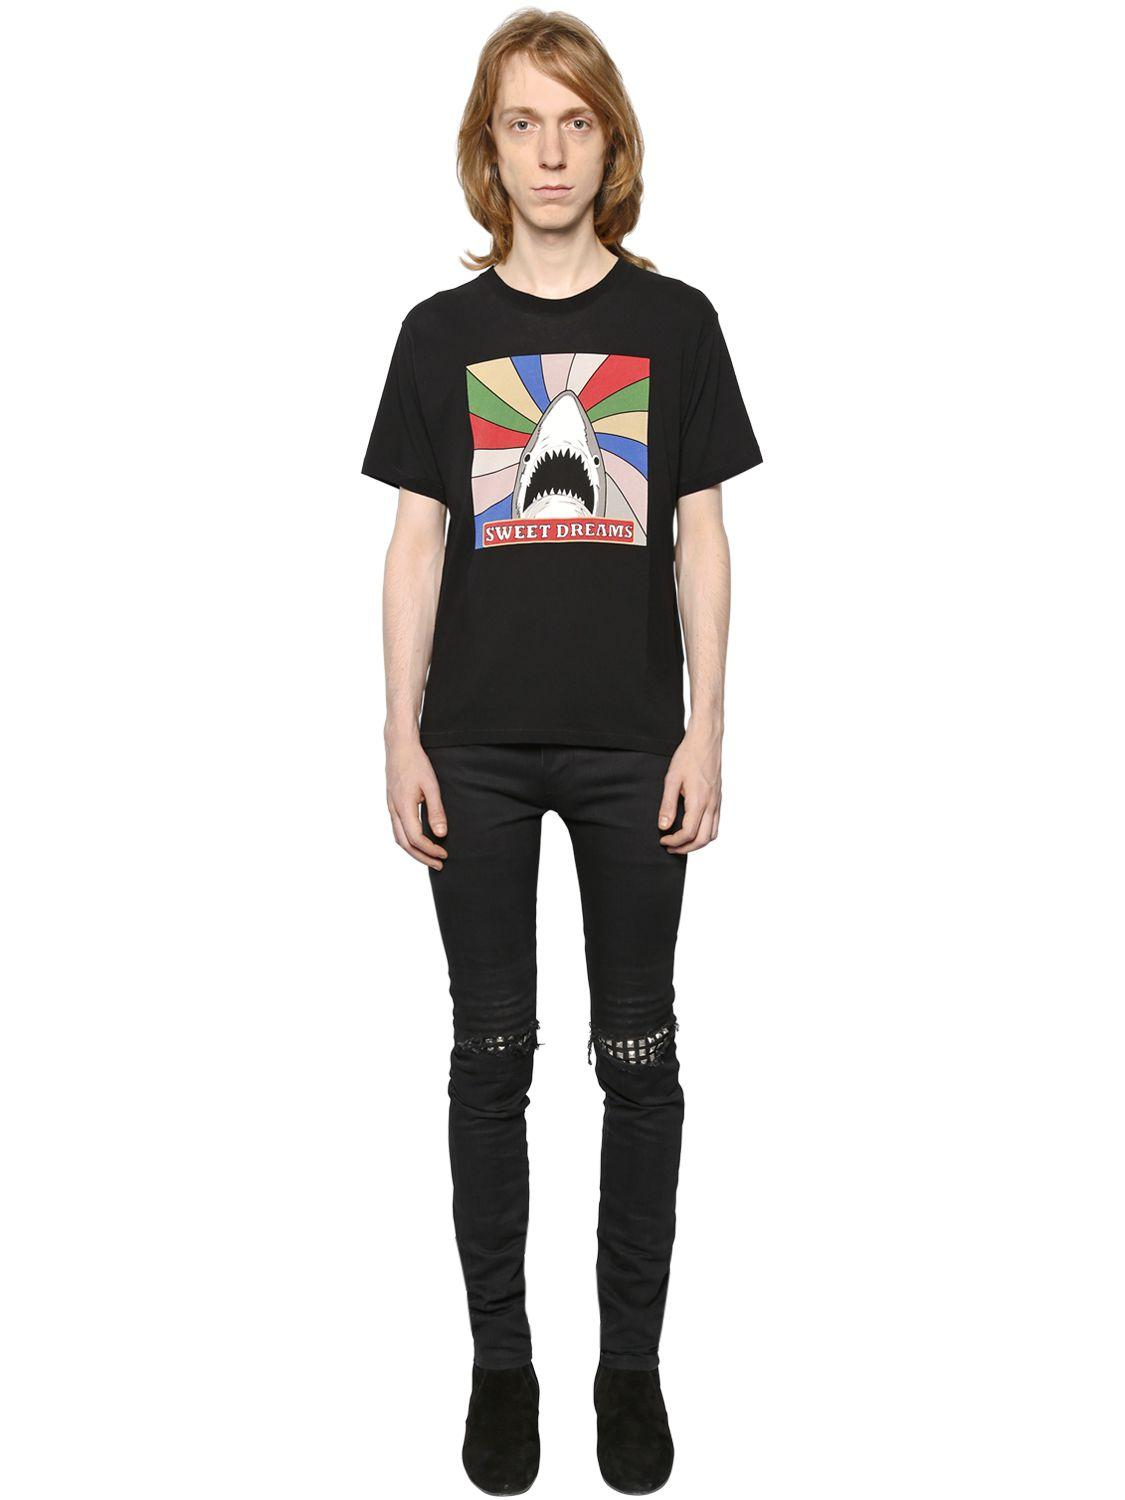 534f2f64 Saint Laurent Shark Sweet Dreams Cotton Jersey T-shirt in Black for ...